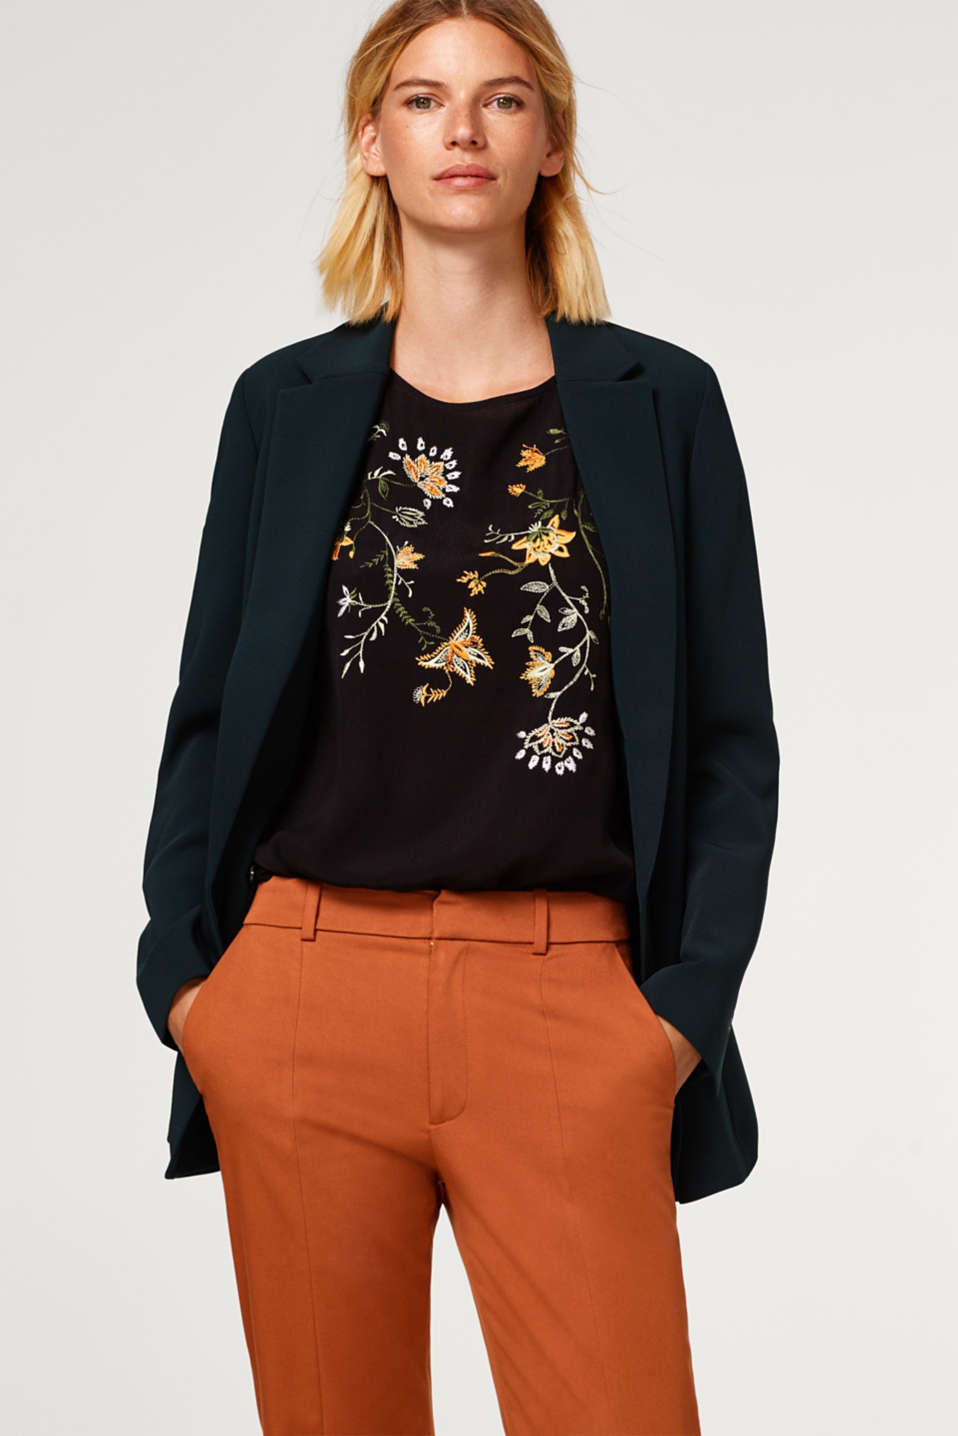 Blouse top with floral embroidery